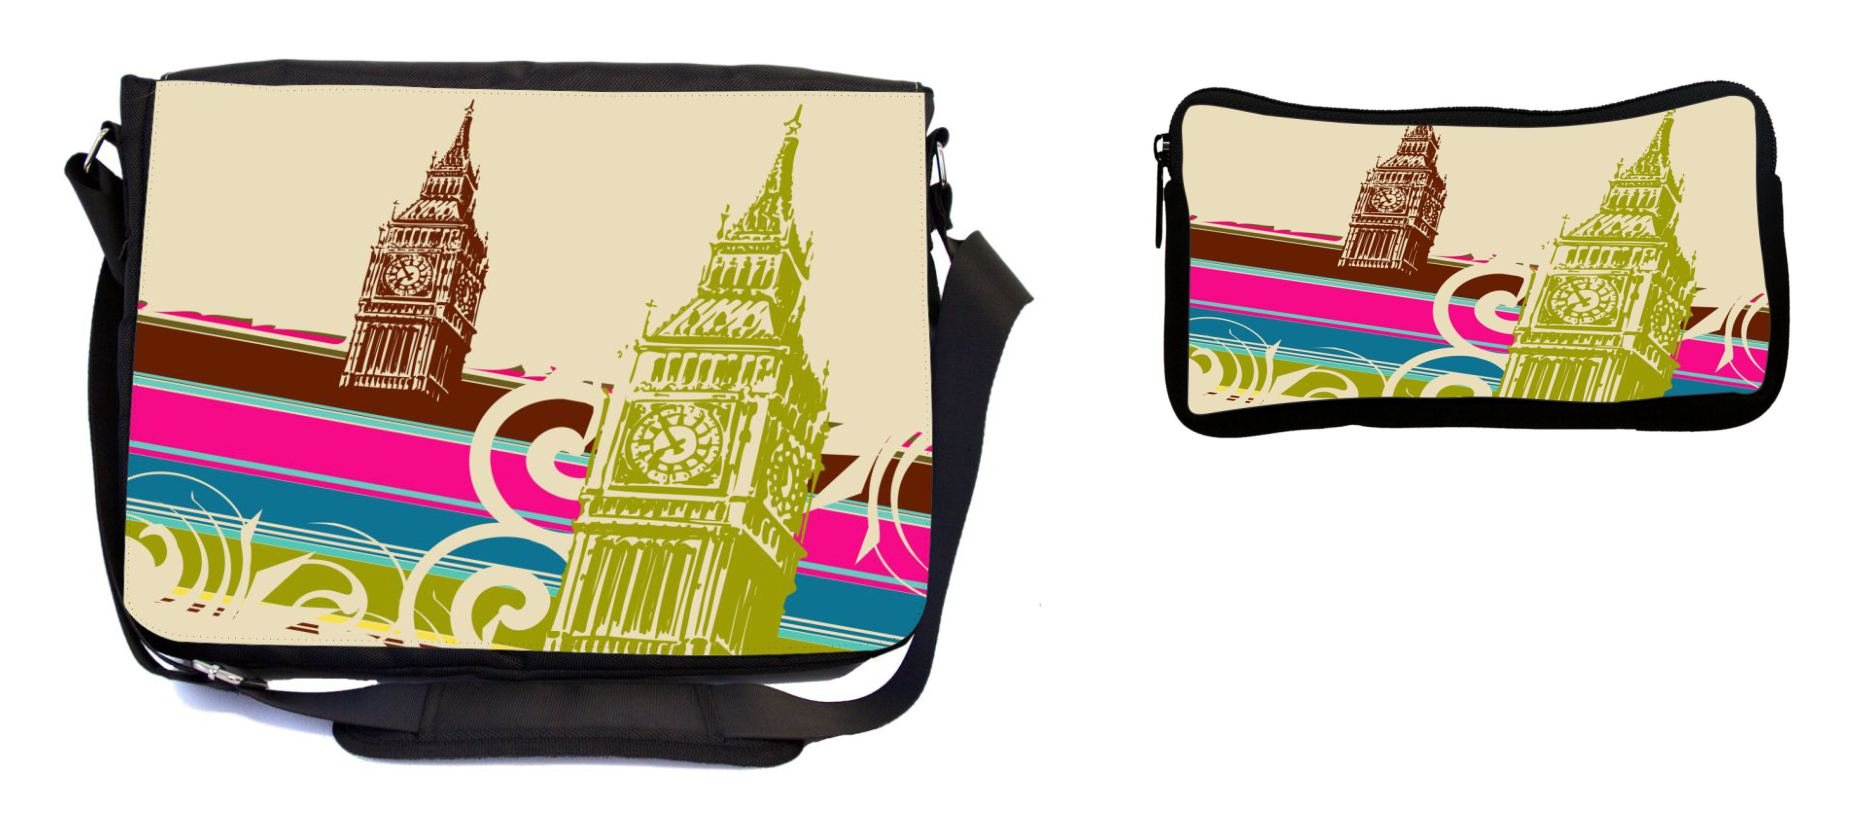 Rikki Knight Fine Art Big Ben Retro Design Multifunction Messenger Bag - School Bag - Laptop Bag - with Padded Insert for School or Work - Includes Pencil Case by Rikki Knight (Image #1)